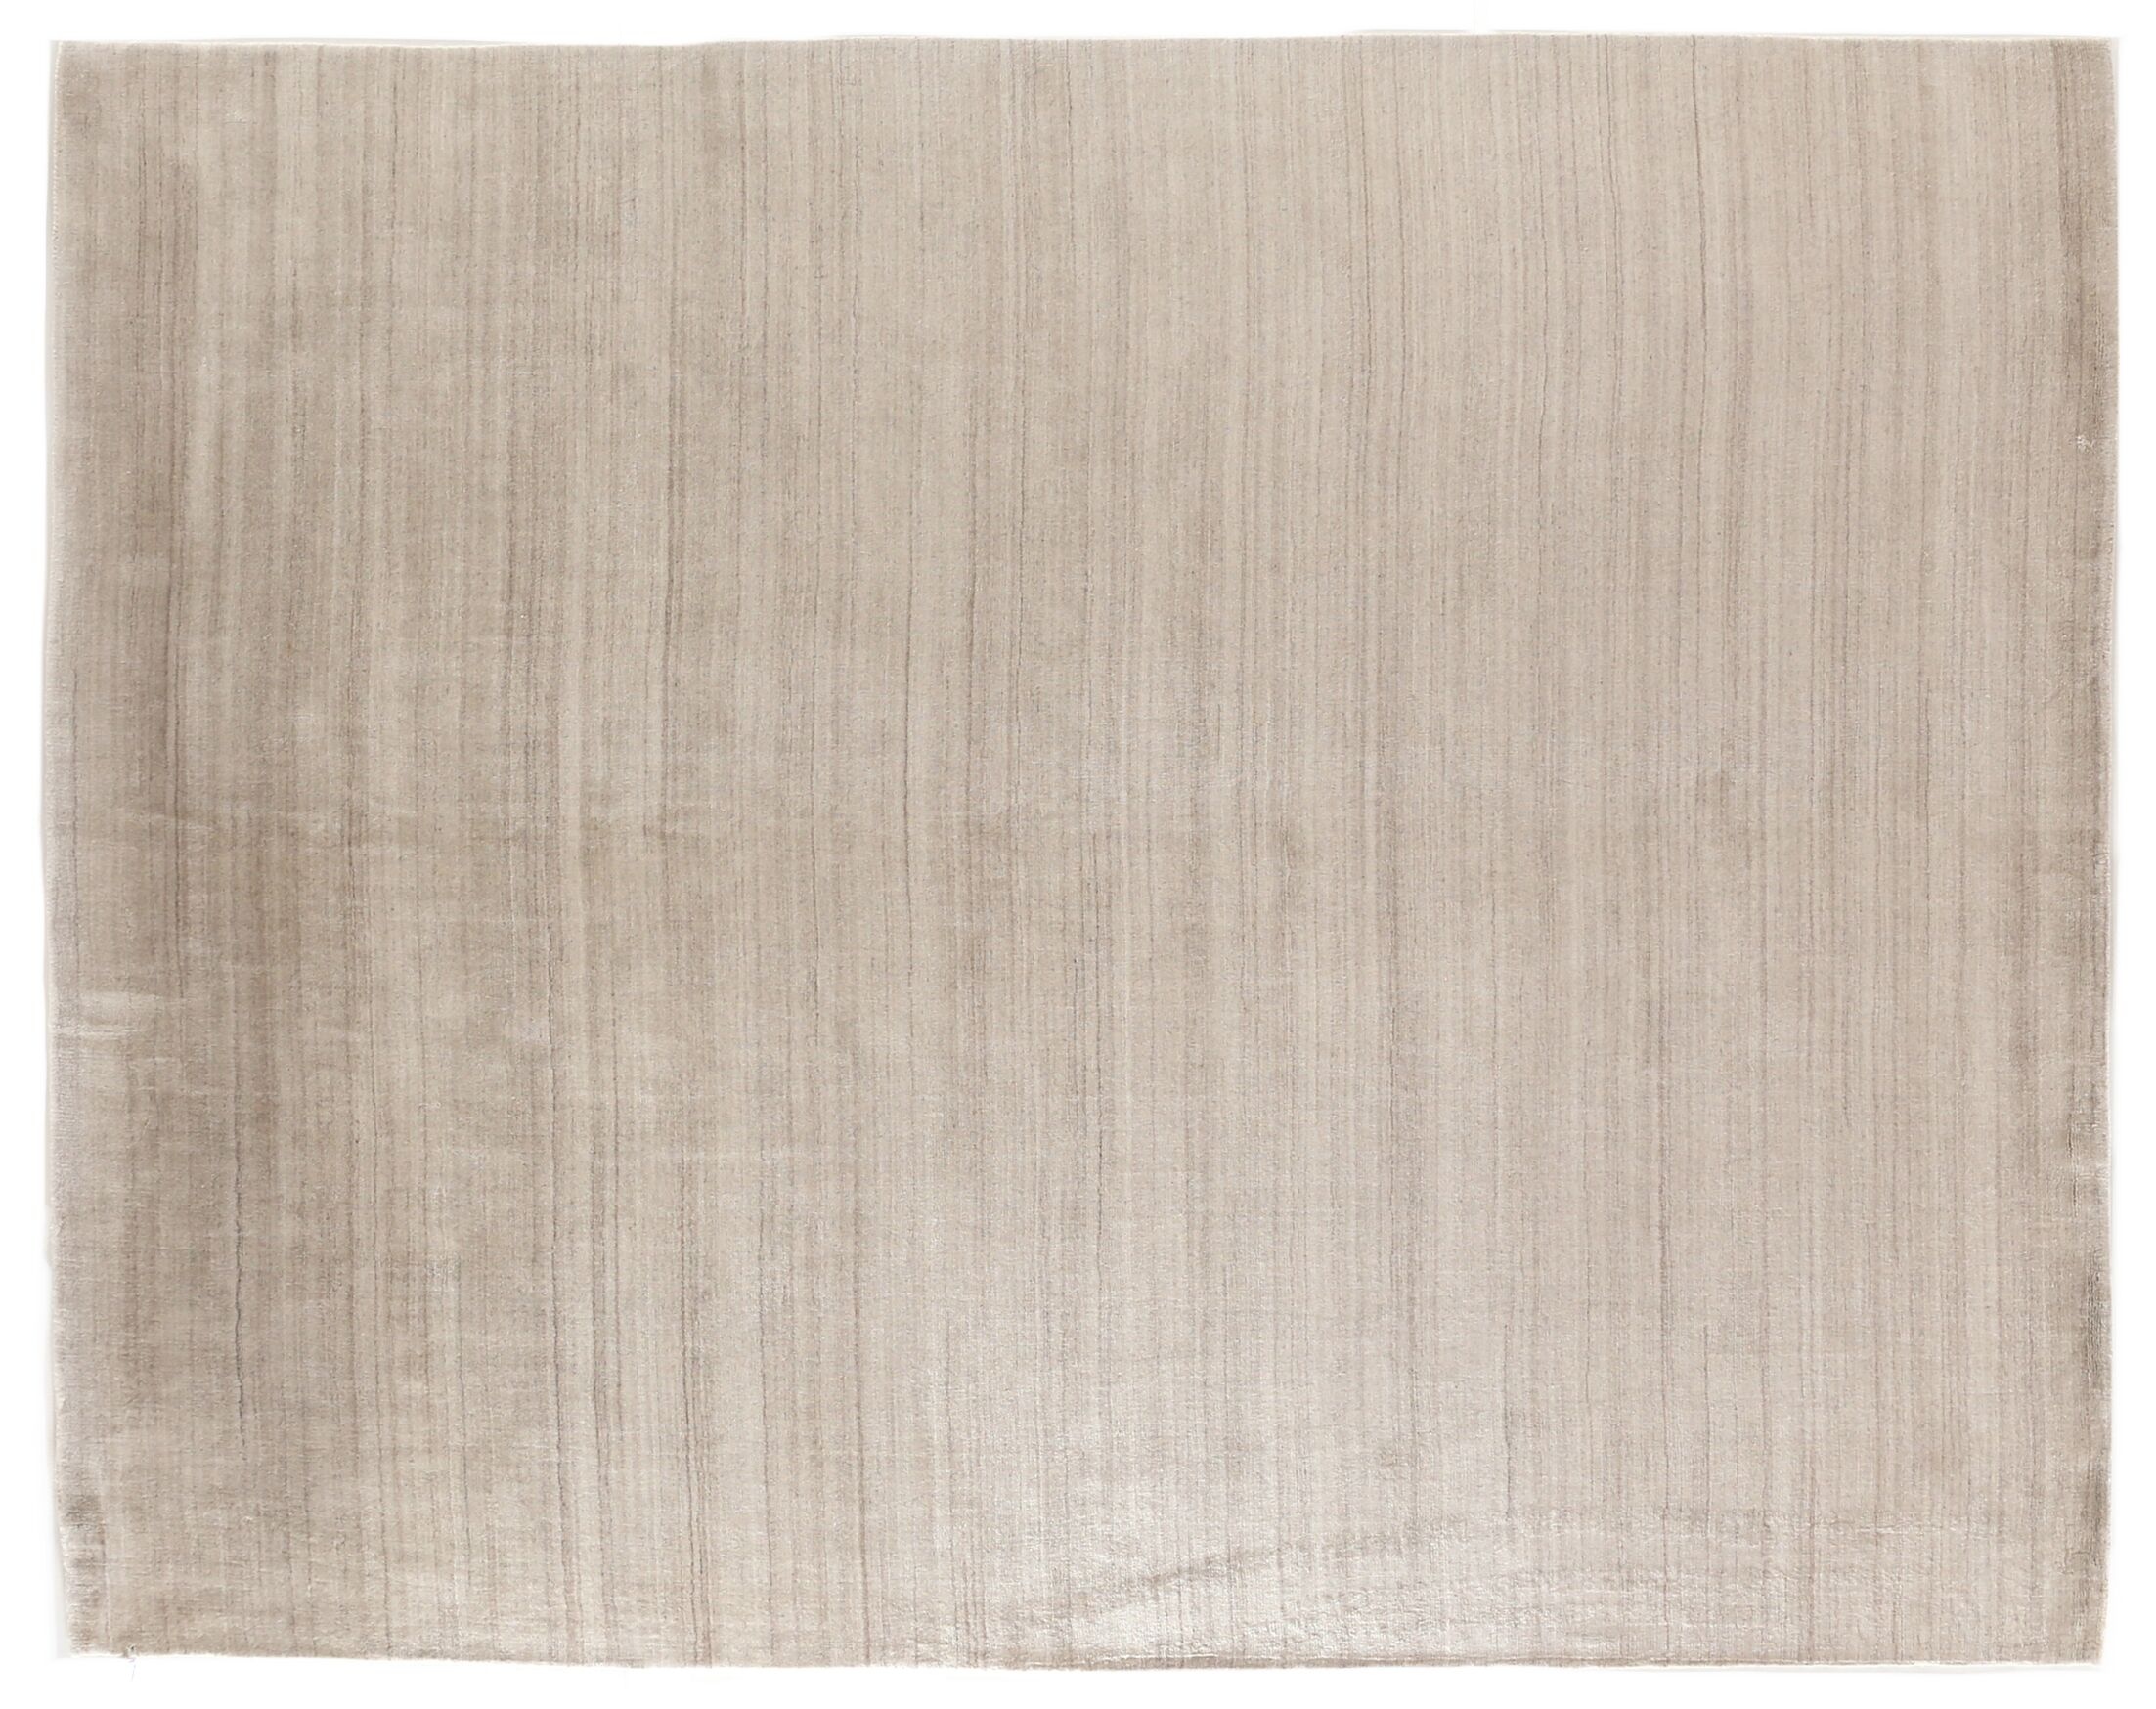 Sanctuary Hand Woven Silk Light Beige Area Rug Rug Size: Rectangle 12' x 15'